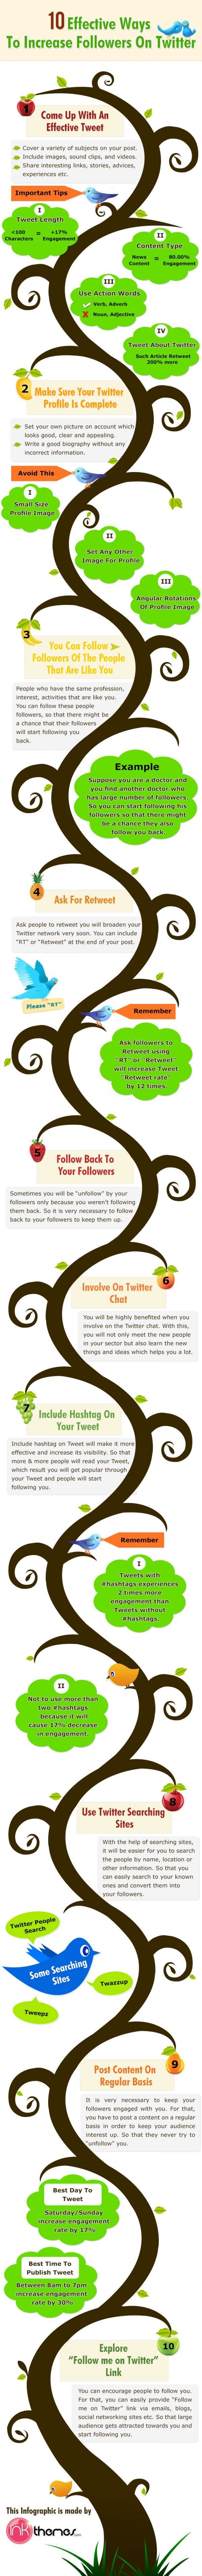 10 Effective Ways To Increase Your #Twitter Followers